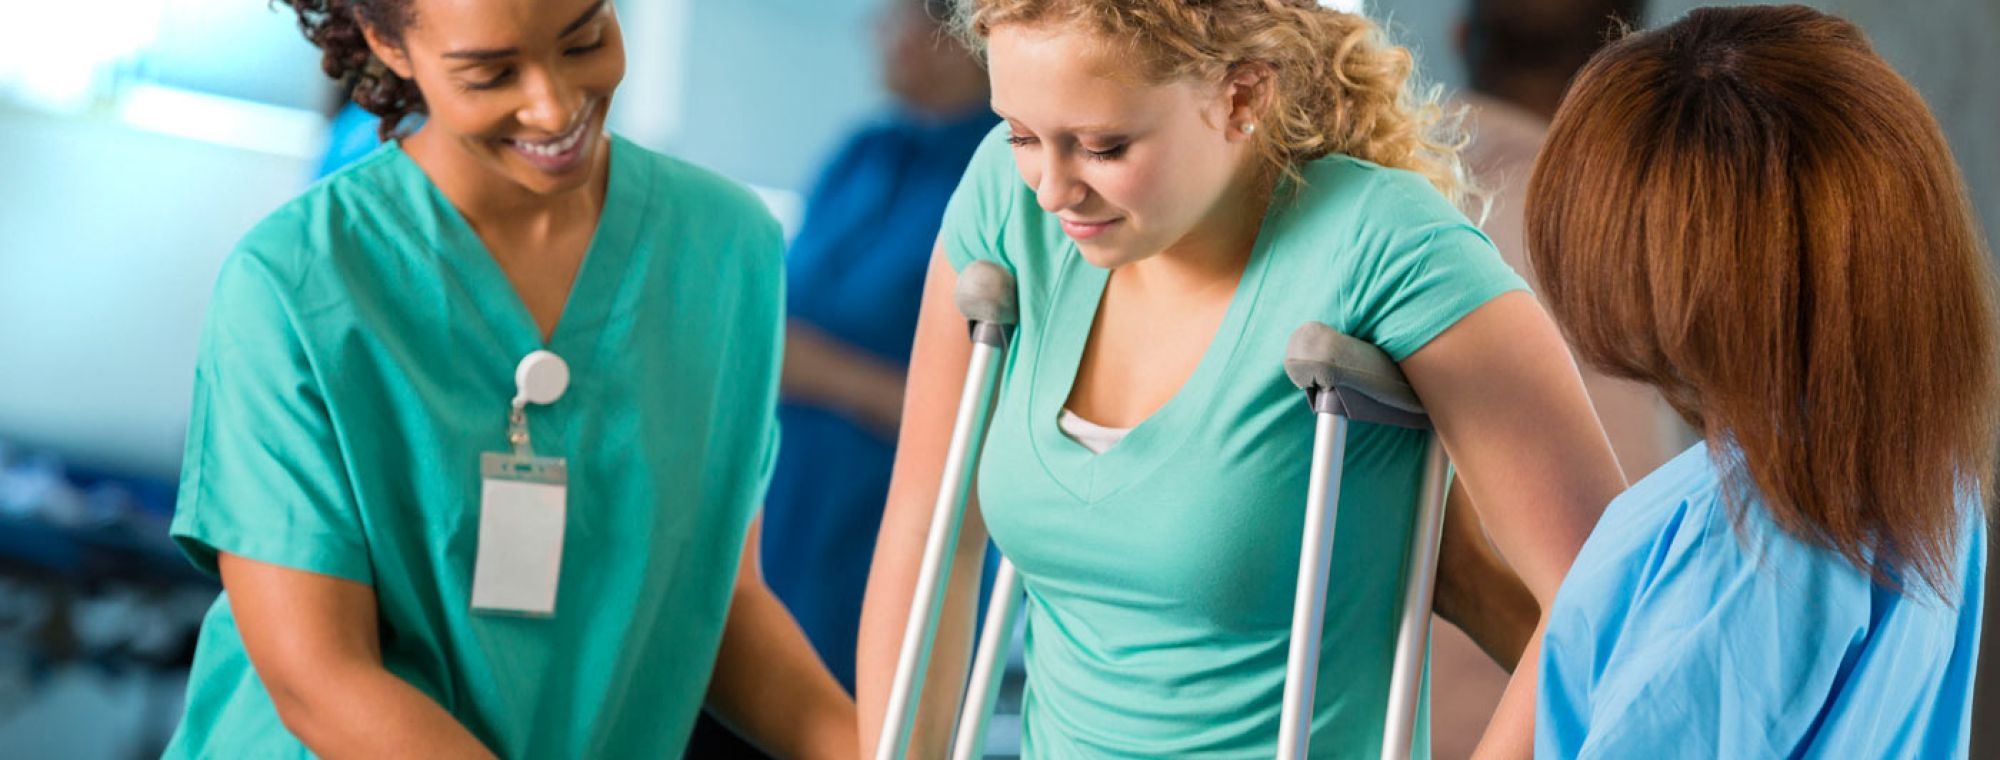 therapy staff helping patient on crutches